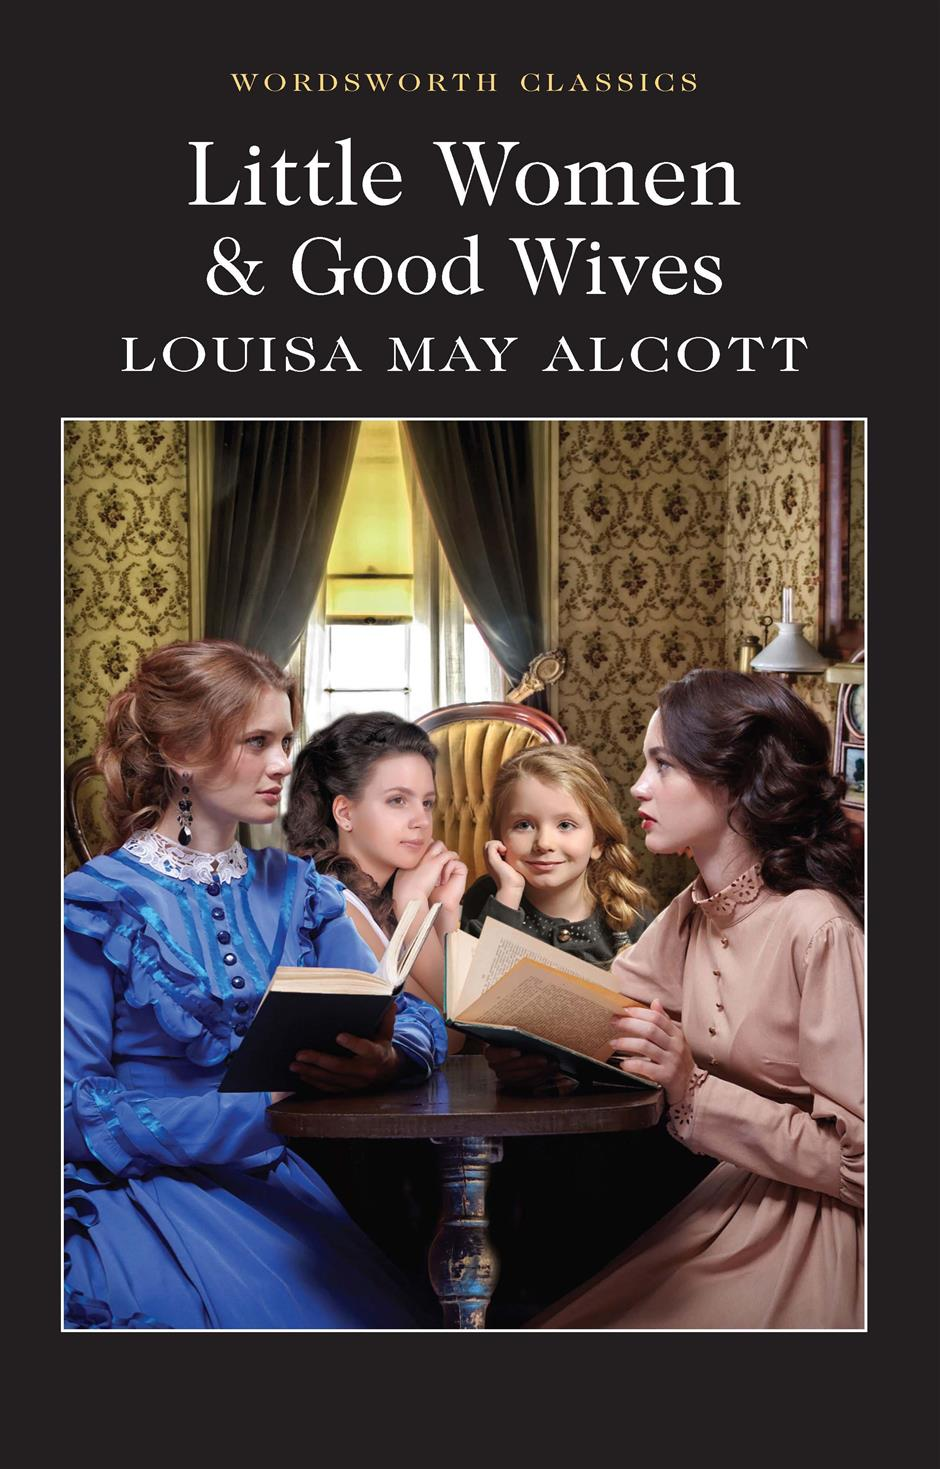 Celebrate the Sisterhood: 150 Years of Little Women